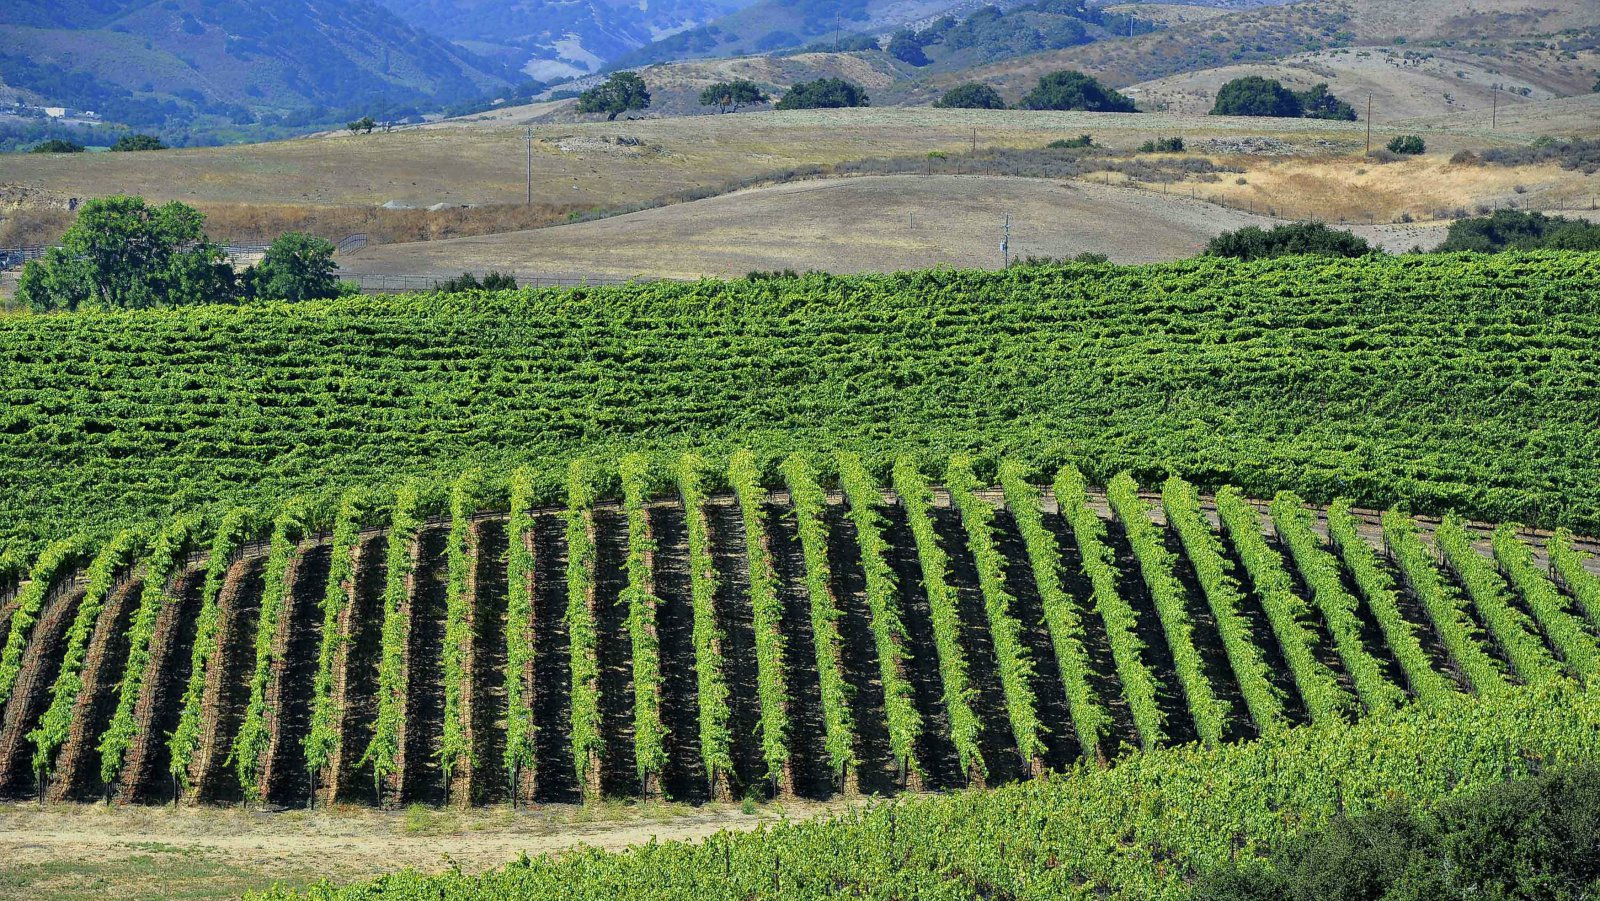 An ancient drought-friendly farming process could become the next organics photo